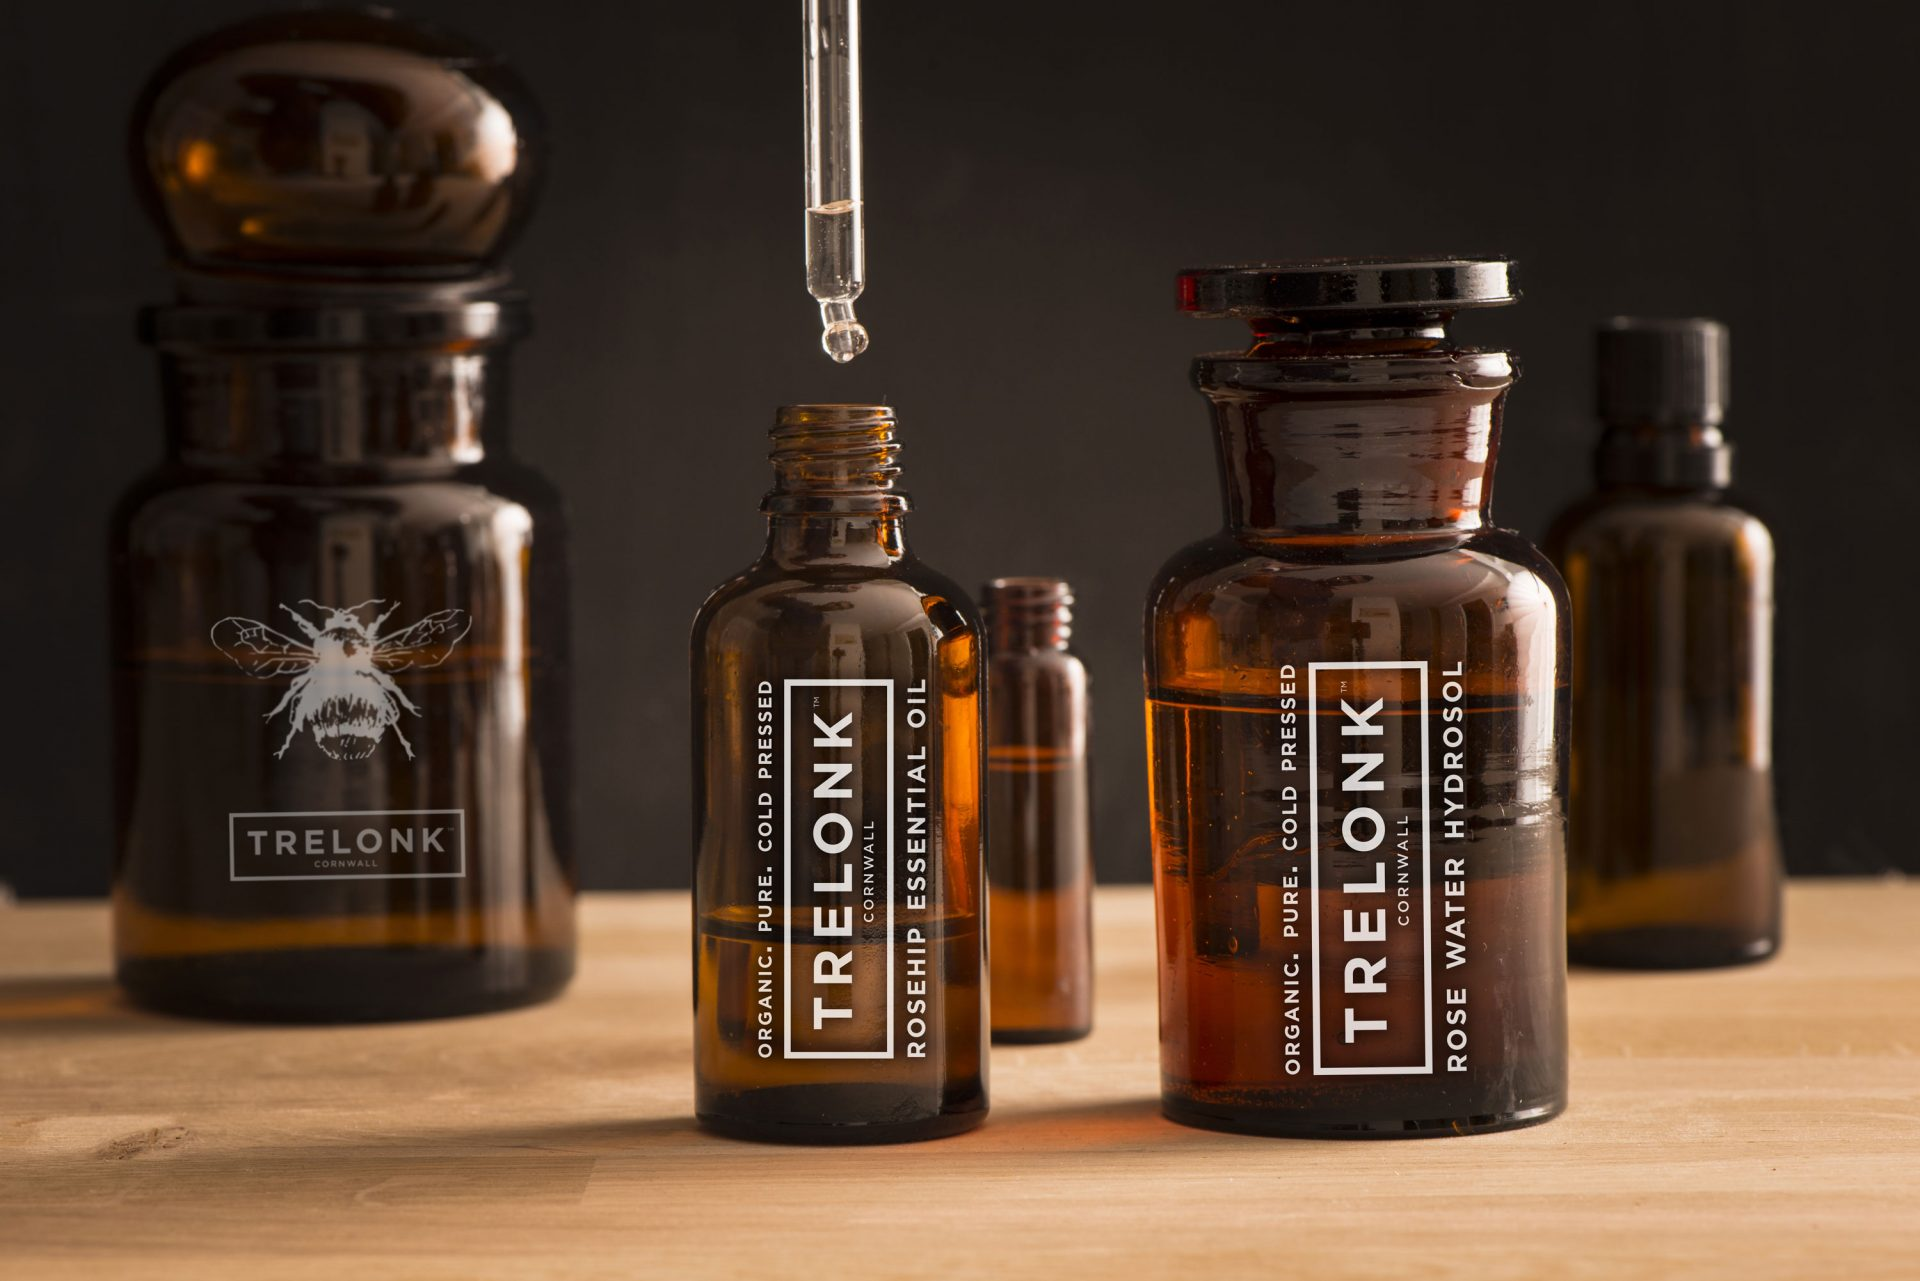 Potential Trelonk Oil Product Range